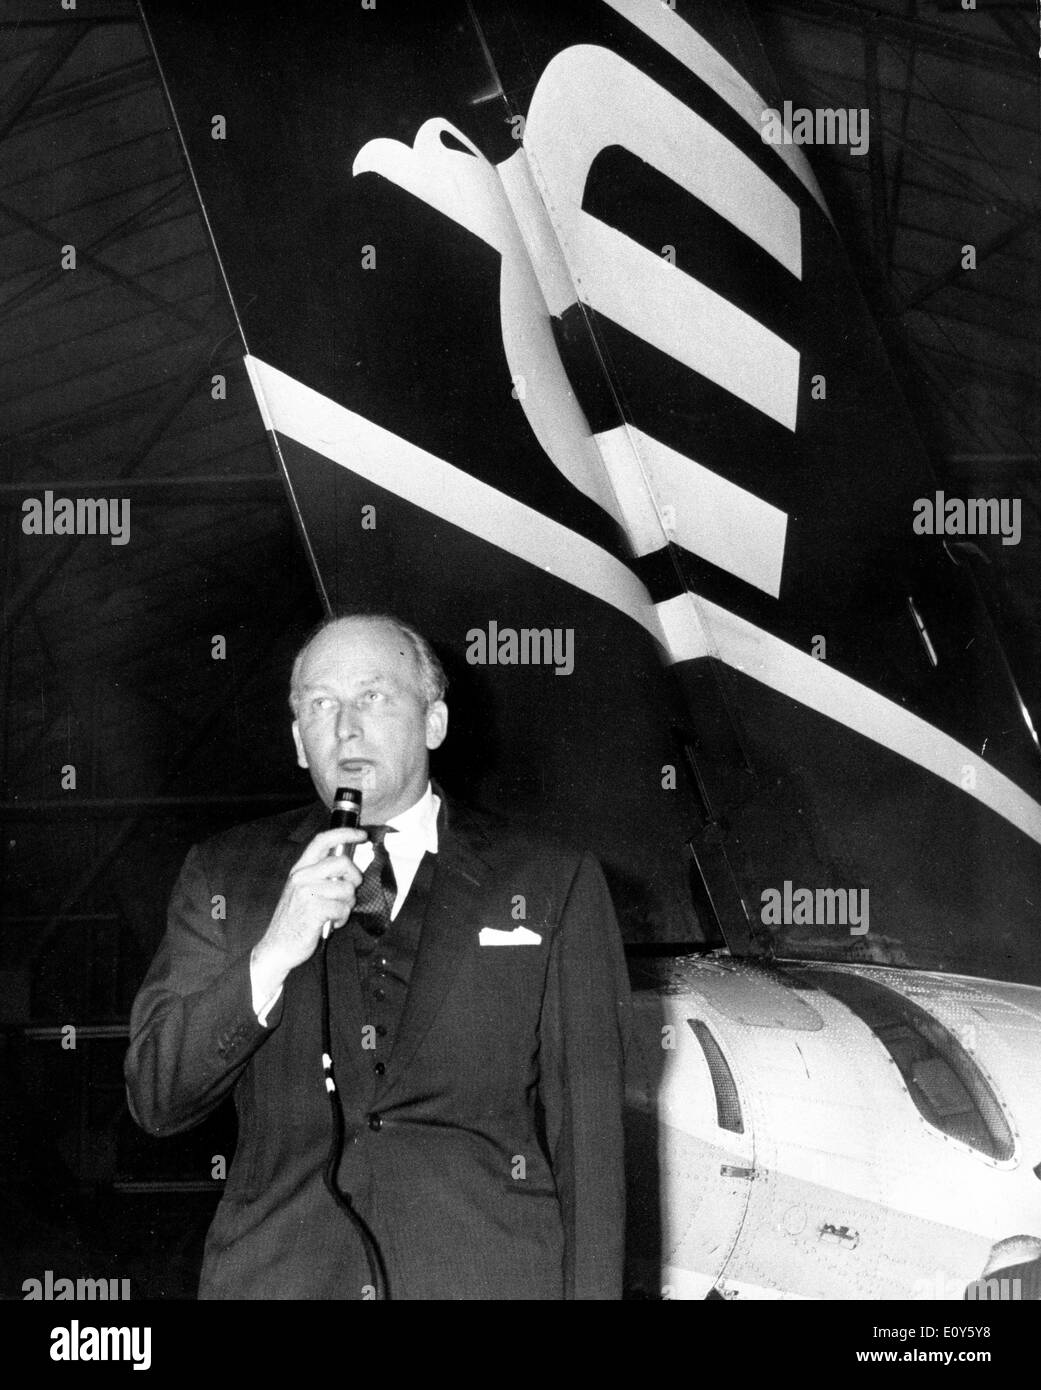 Nov 20, 1968; London, UK; British Eagle's final debt may be more than 4,000 pounds creditors were told today. This was made clear from the figures given by Mr. F.S. McWhirter, the city accountant and the airline's liquidator, at the creditors meeting hold in a hangar at Heathrow Airport. In the picture is Mr. HAROLD BAMBERG , chairman and managing director, founder of the British Eagle at the meeting. - Stock Image